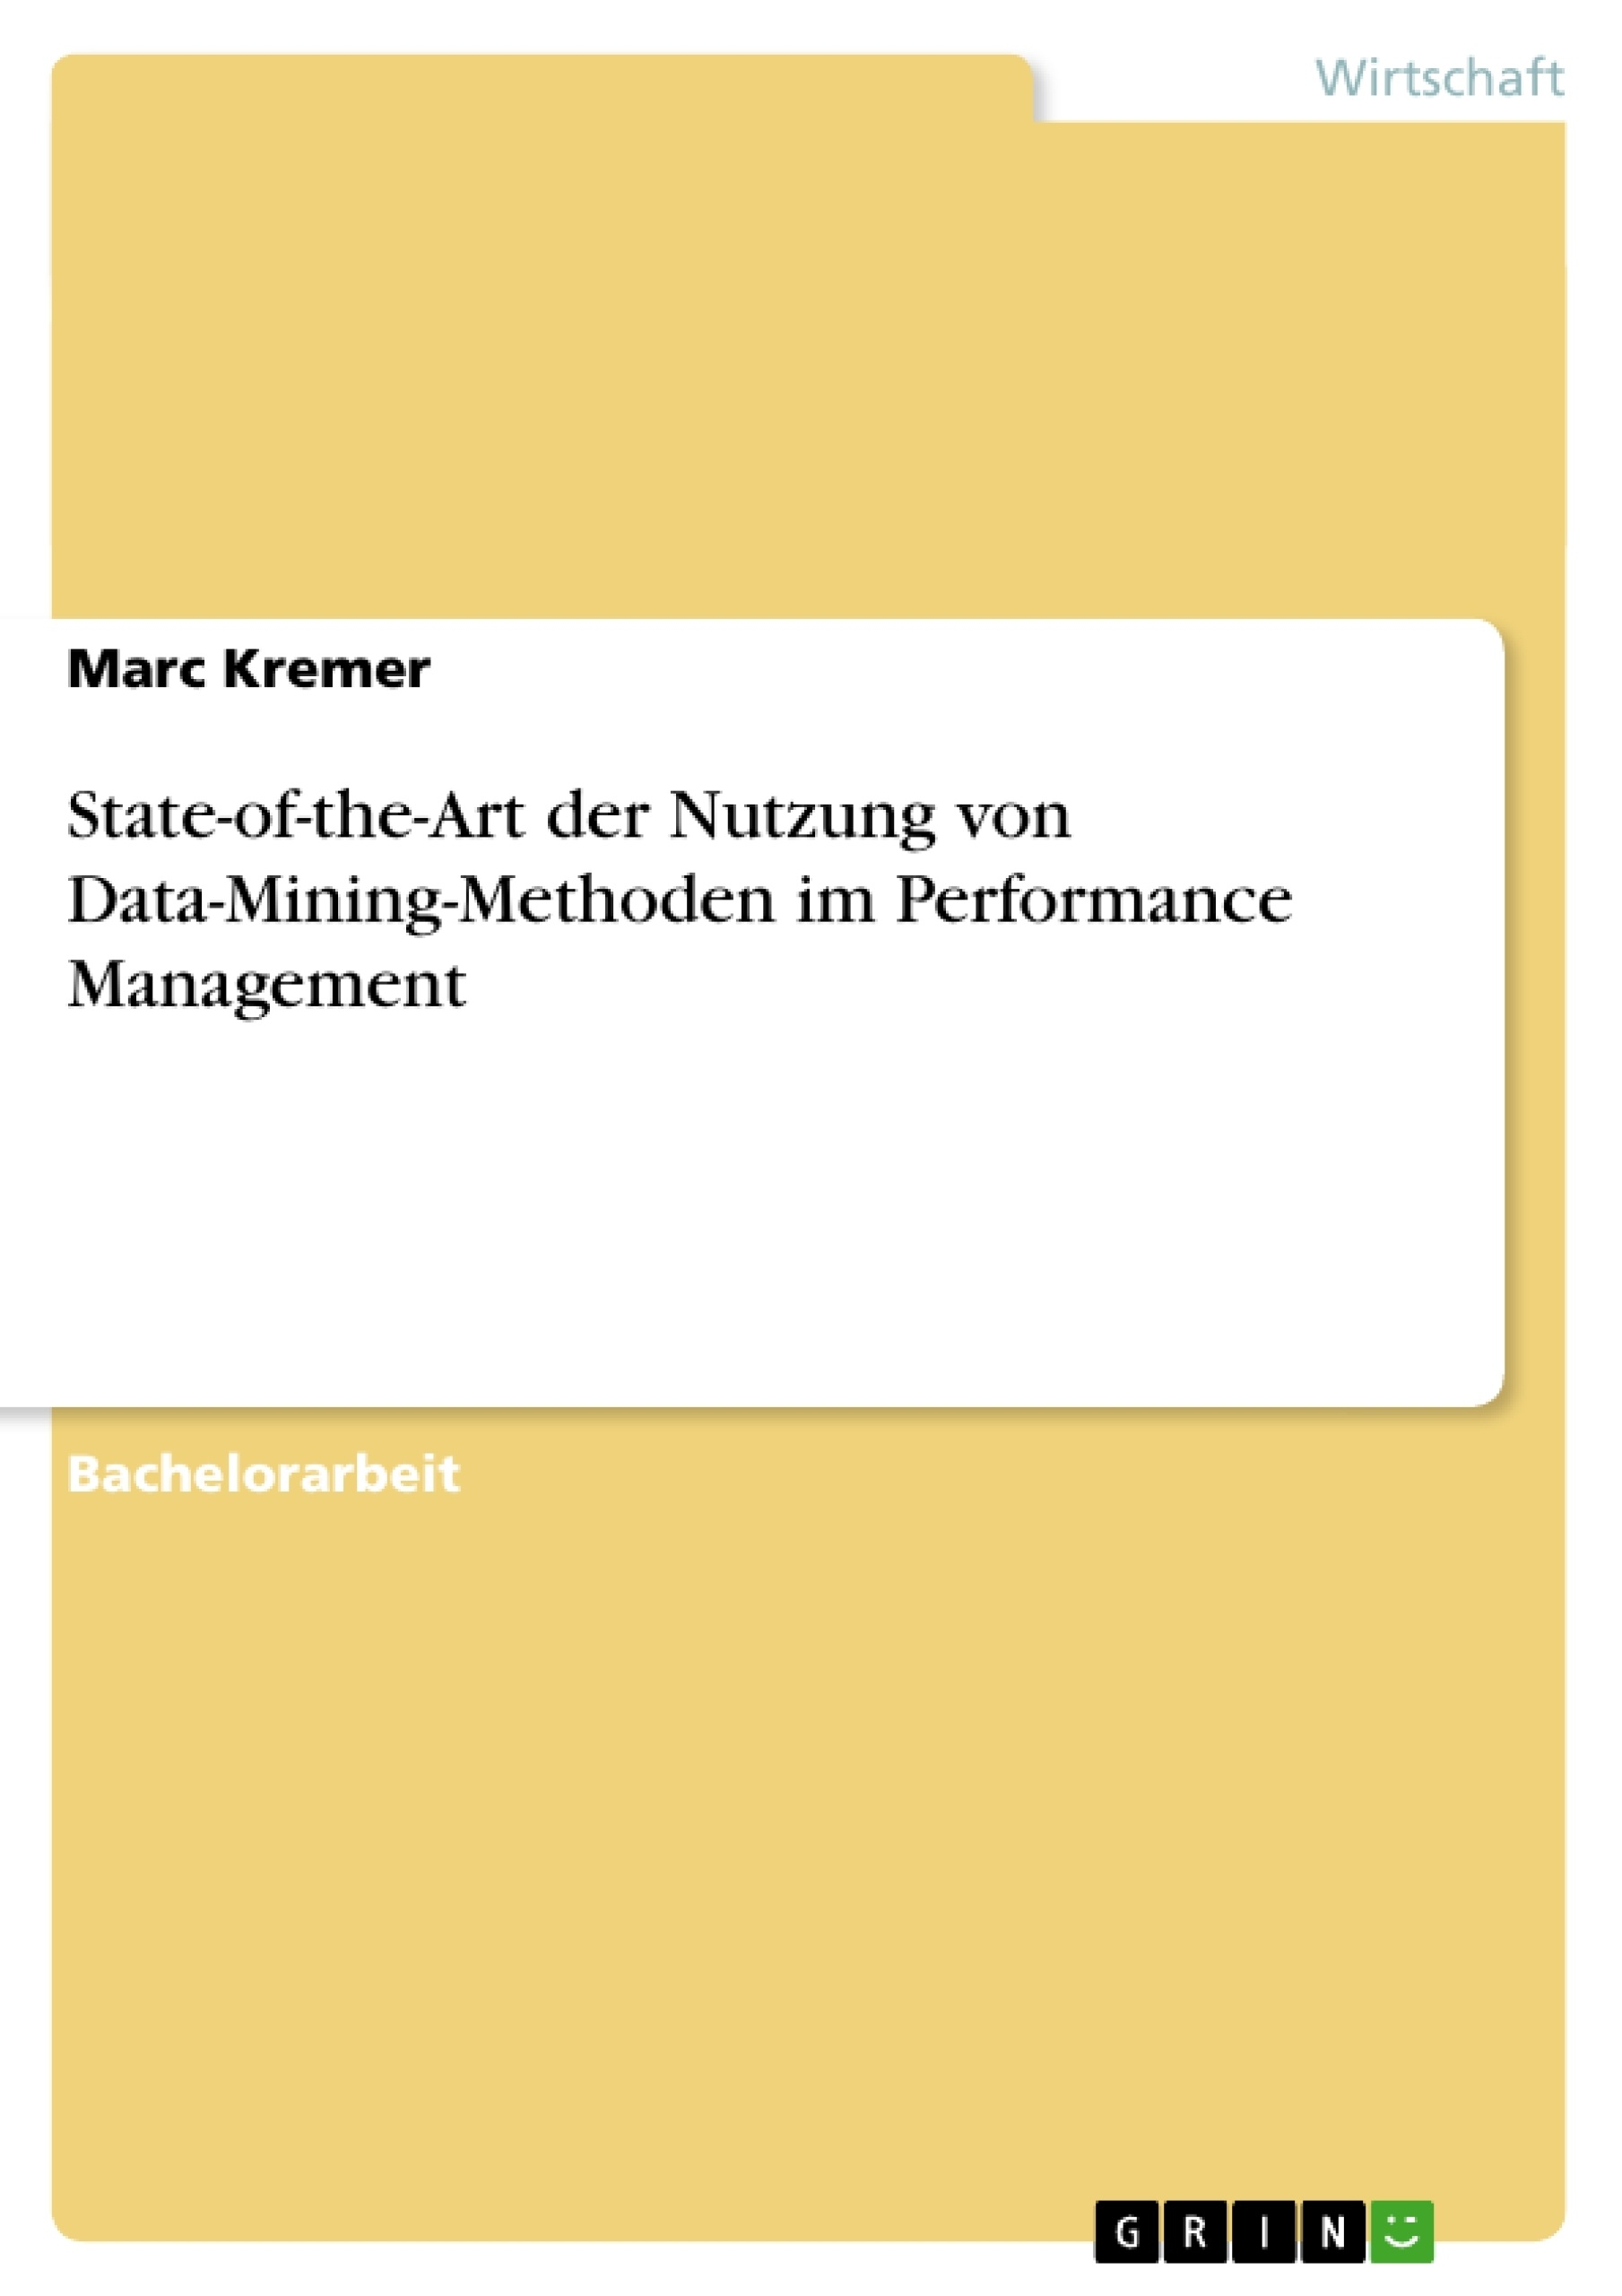 Titel: State-of-the-Art der Nutzung von Data-Mining-Methoden im Performance Management